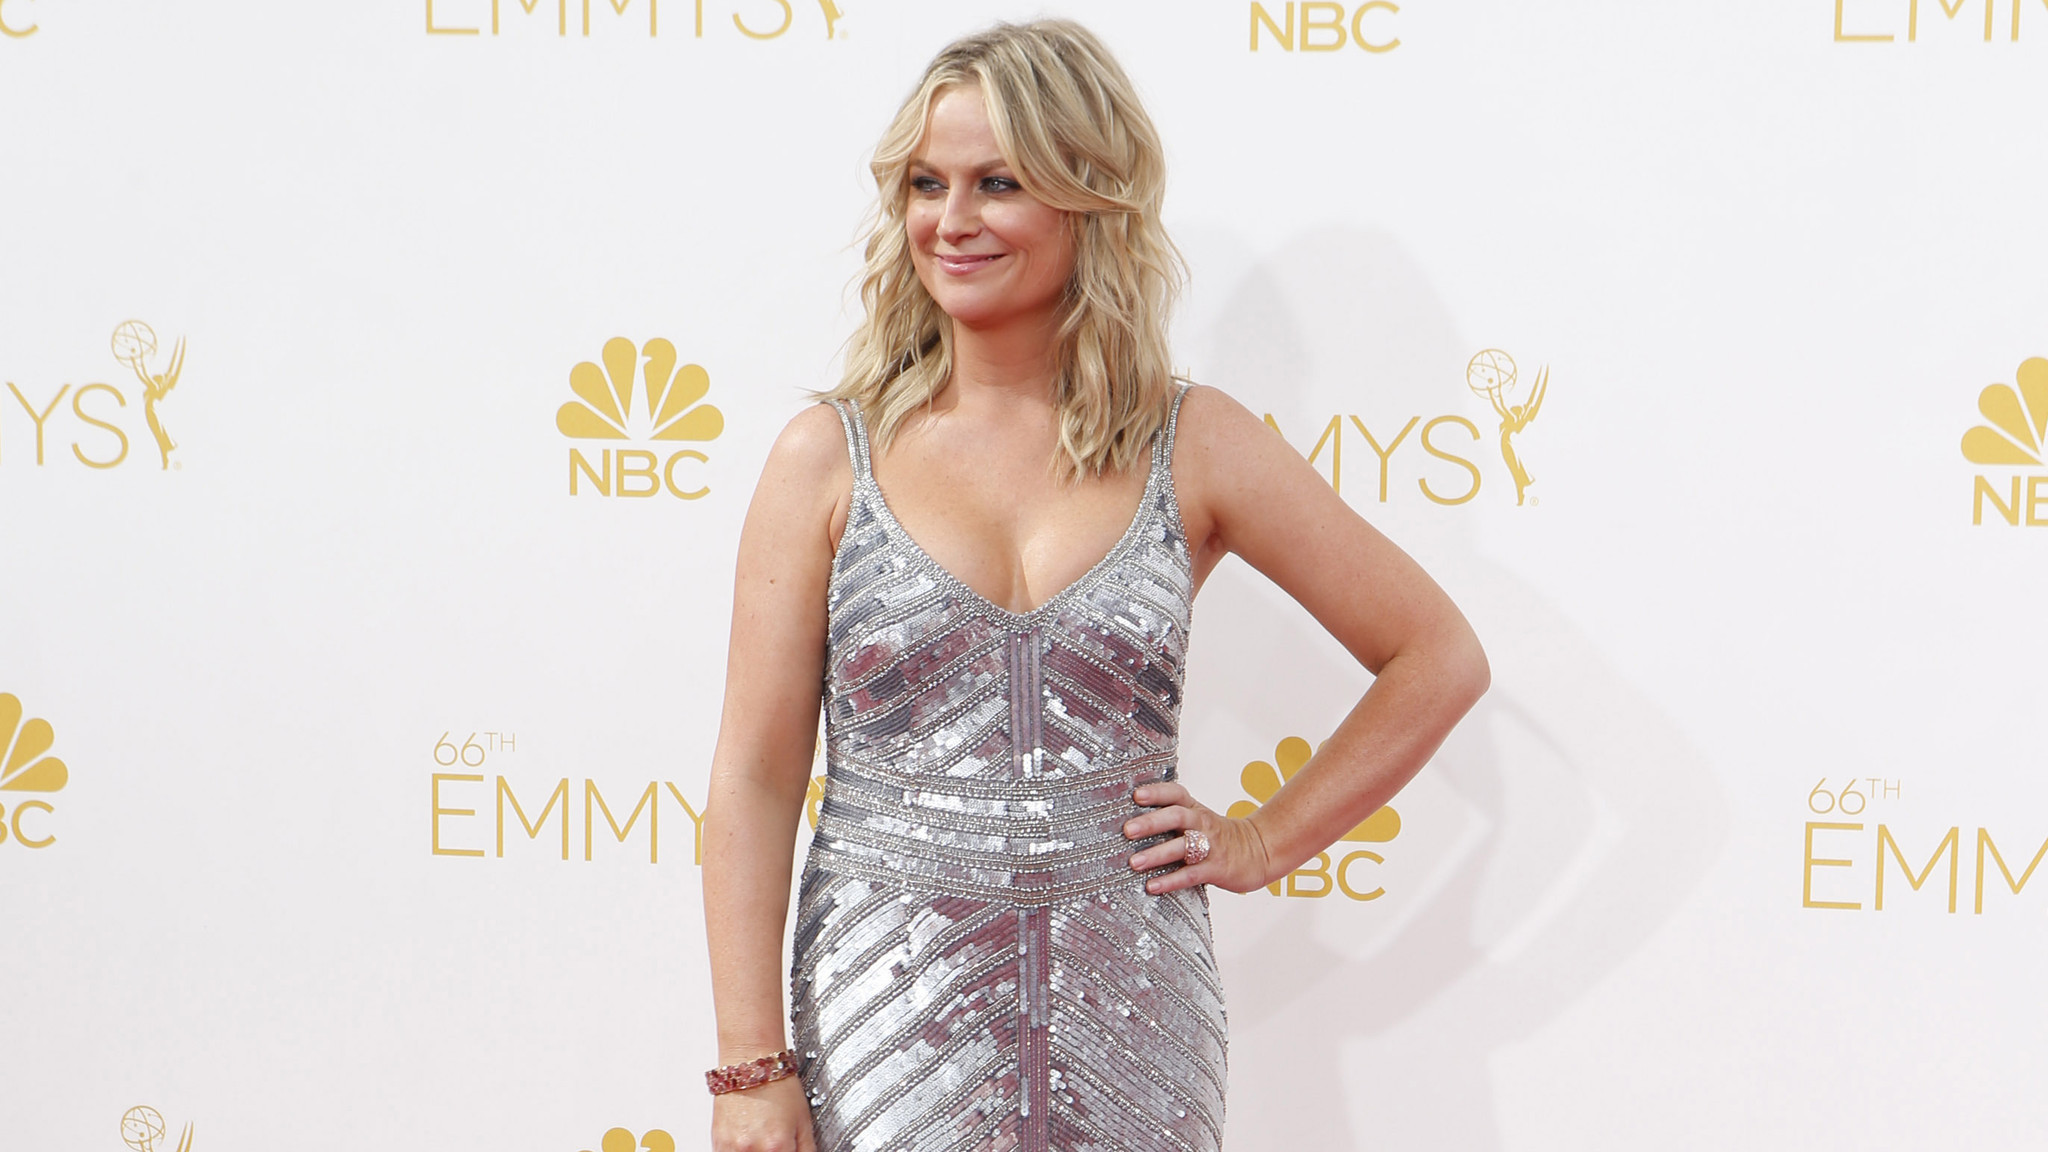 Amy Poehler Hot Bikini Pictures, Sexy Kissing Videos